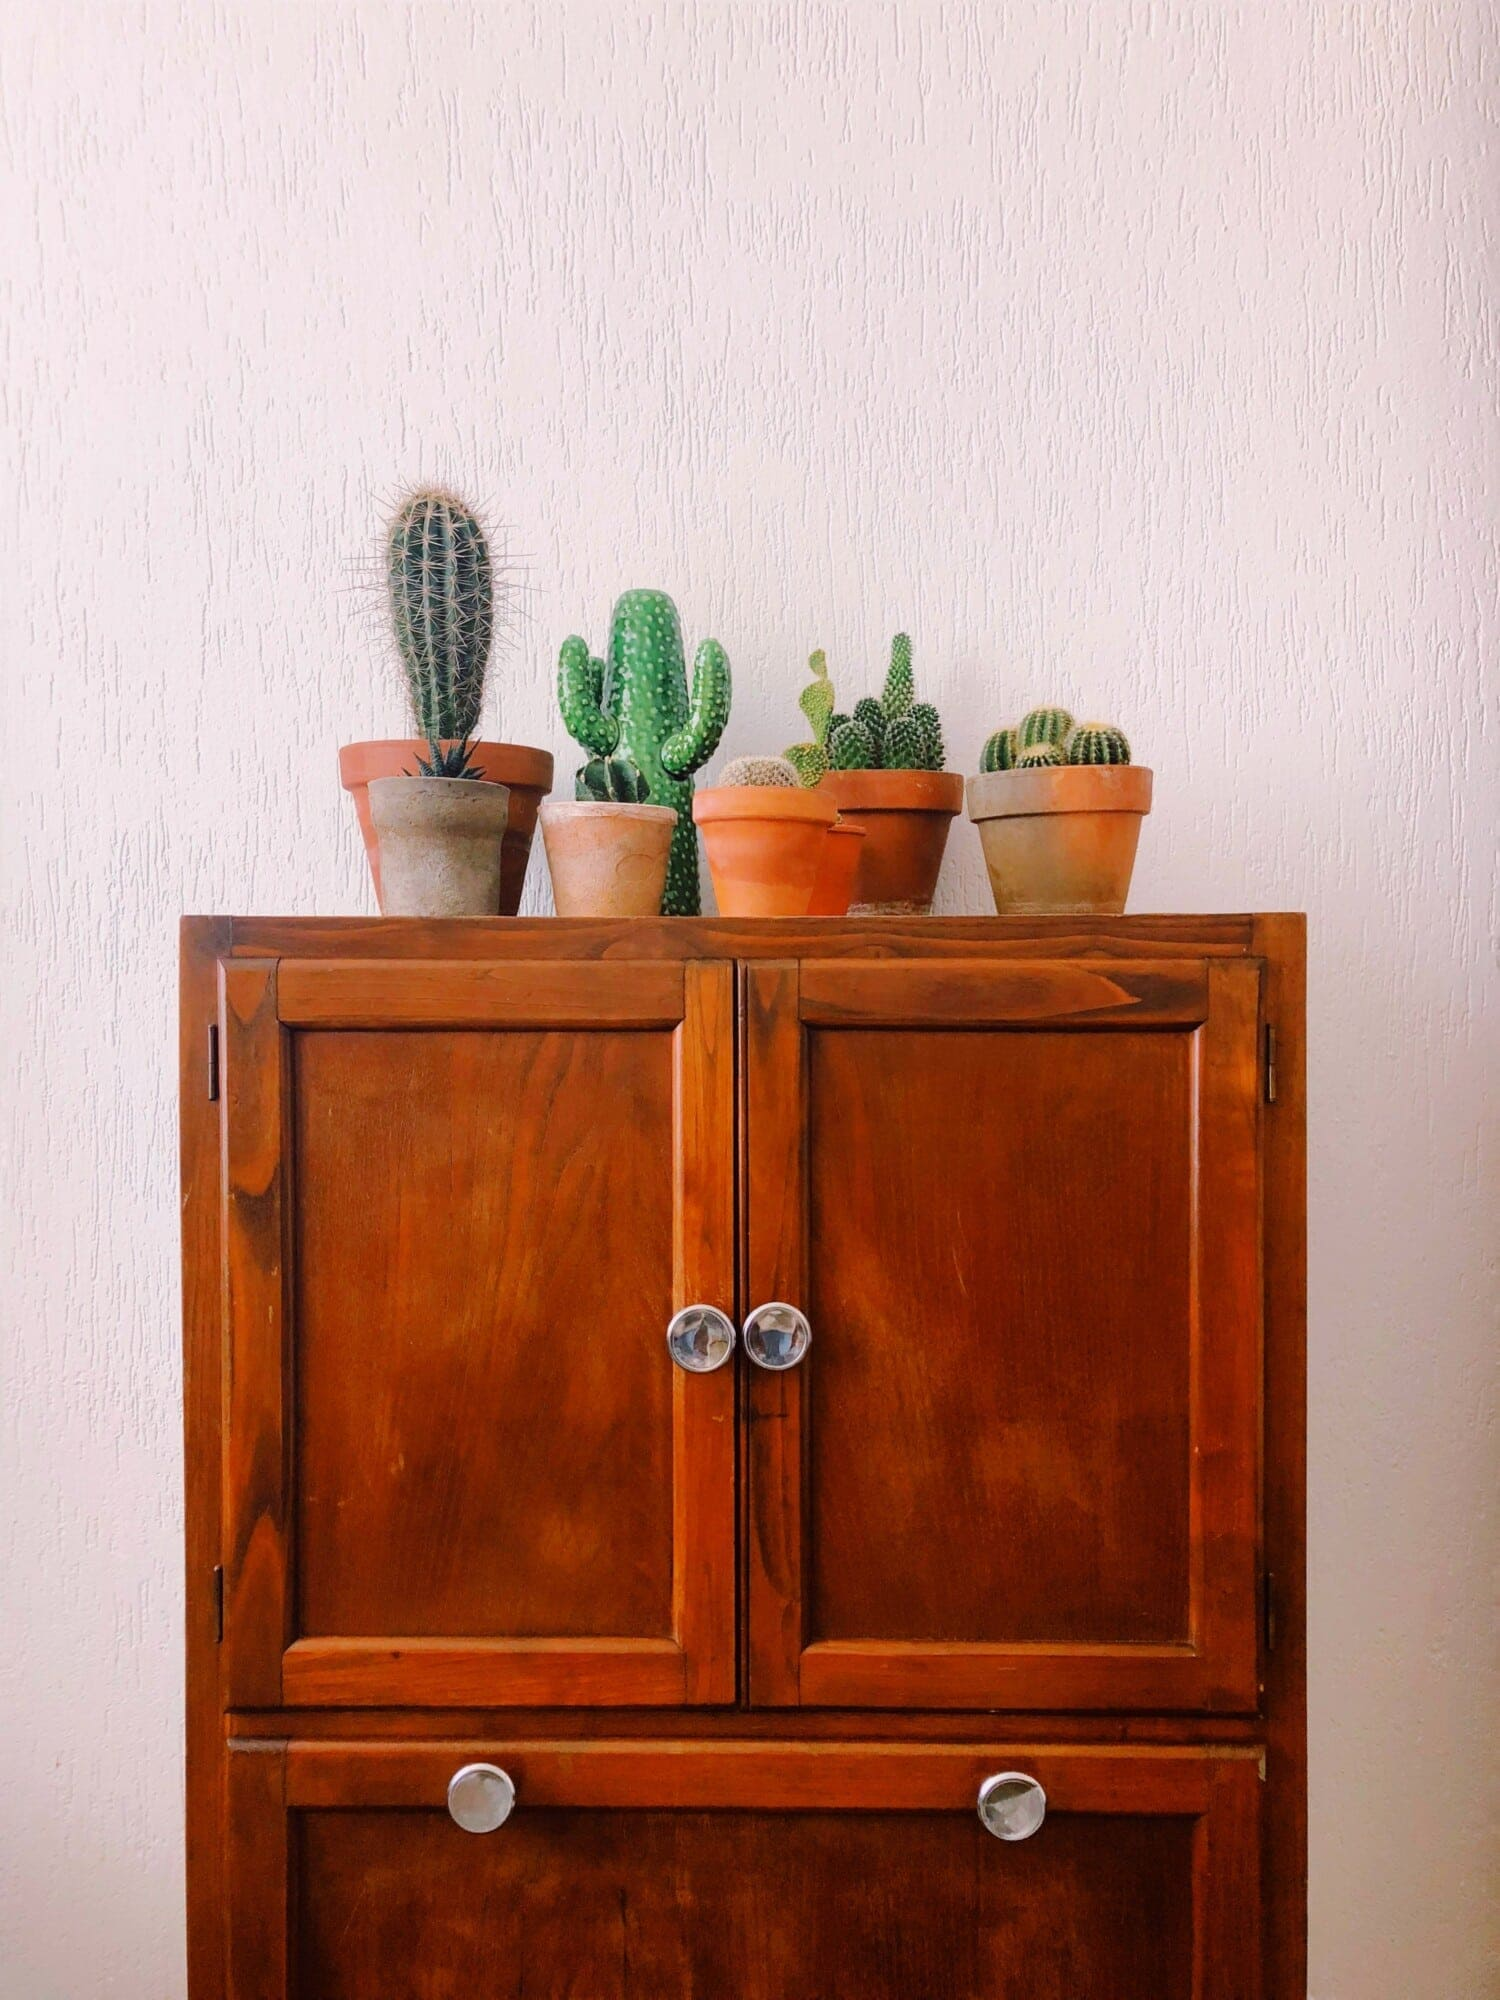 tiny cactus on cabinet